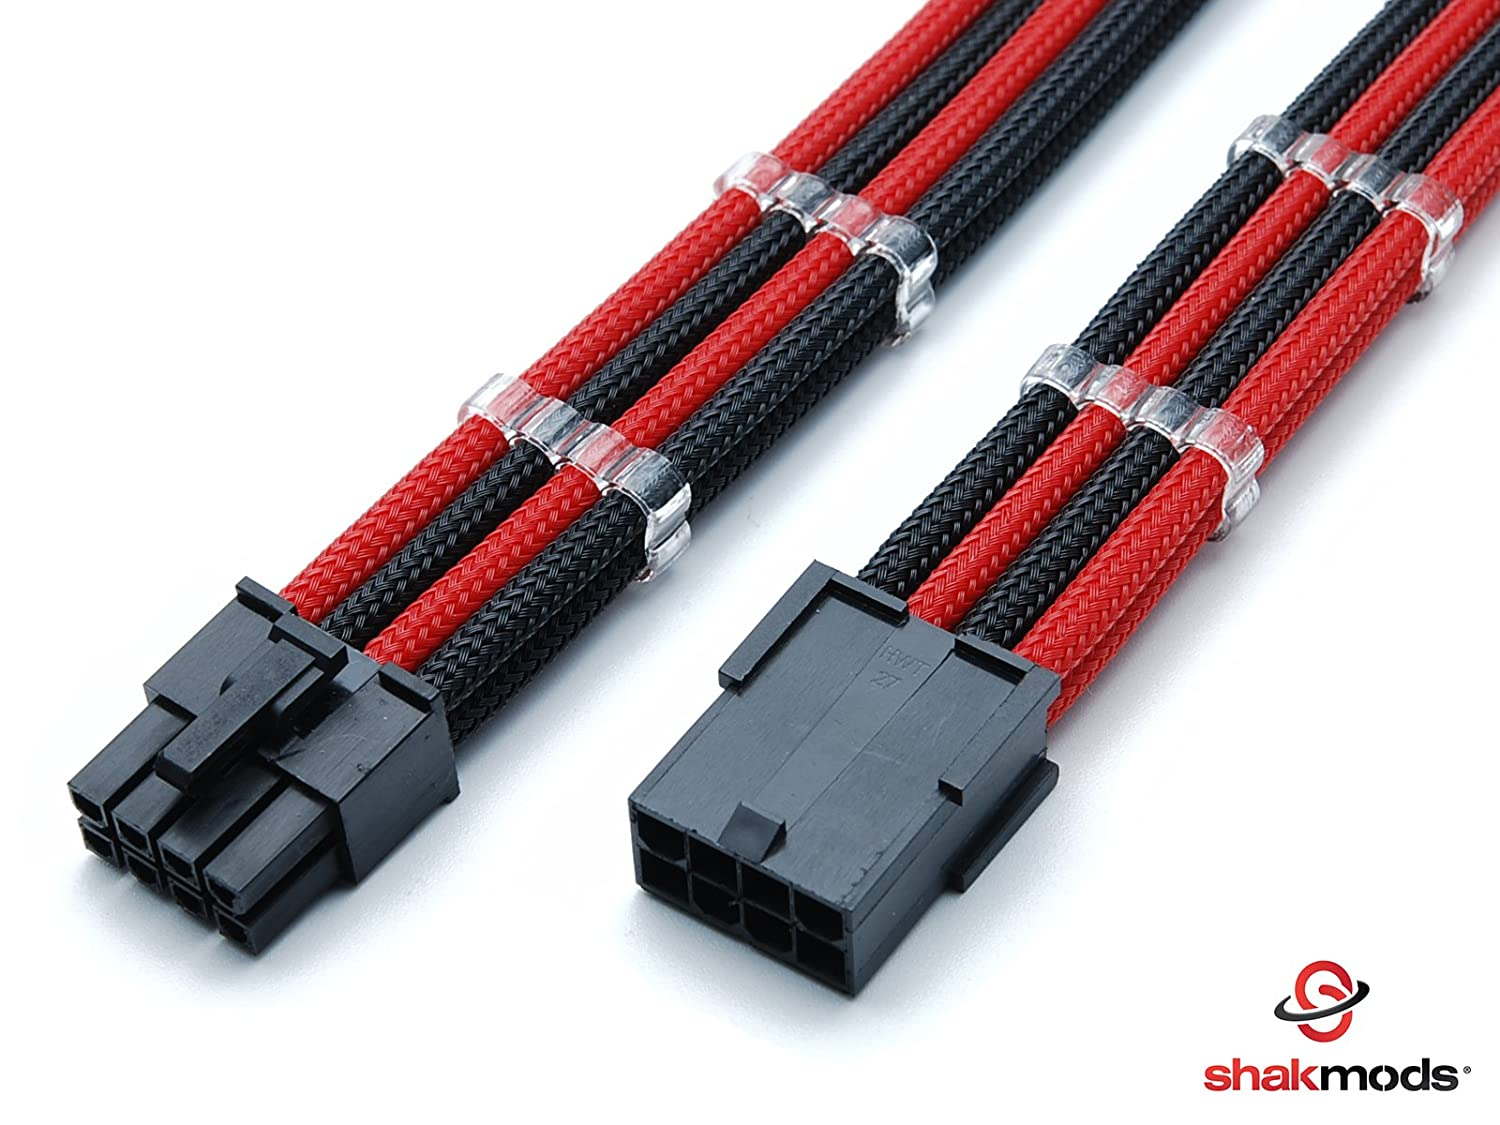 Shakmods 8 Pin ATX CPU Motherboard Black & Red Heatshrinkless Sleeved Extension Cable with 2 Free Cable Combs 30cm 1704